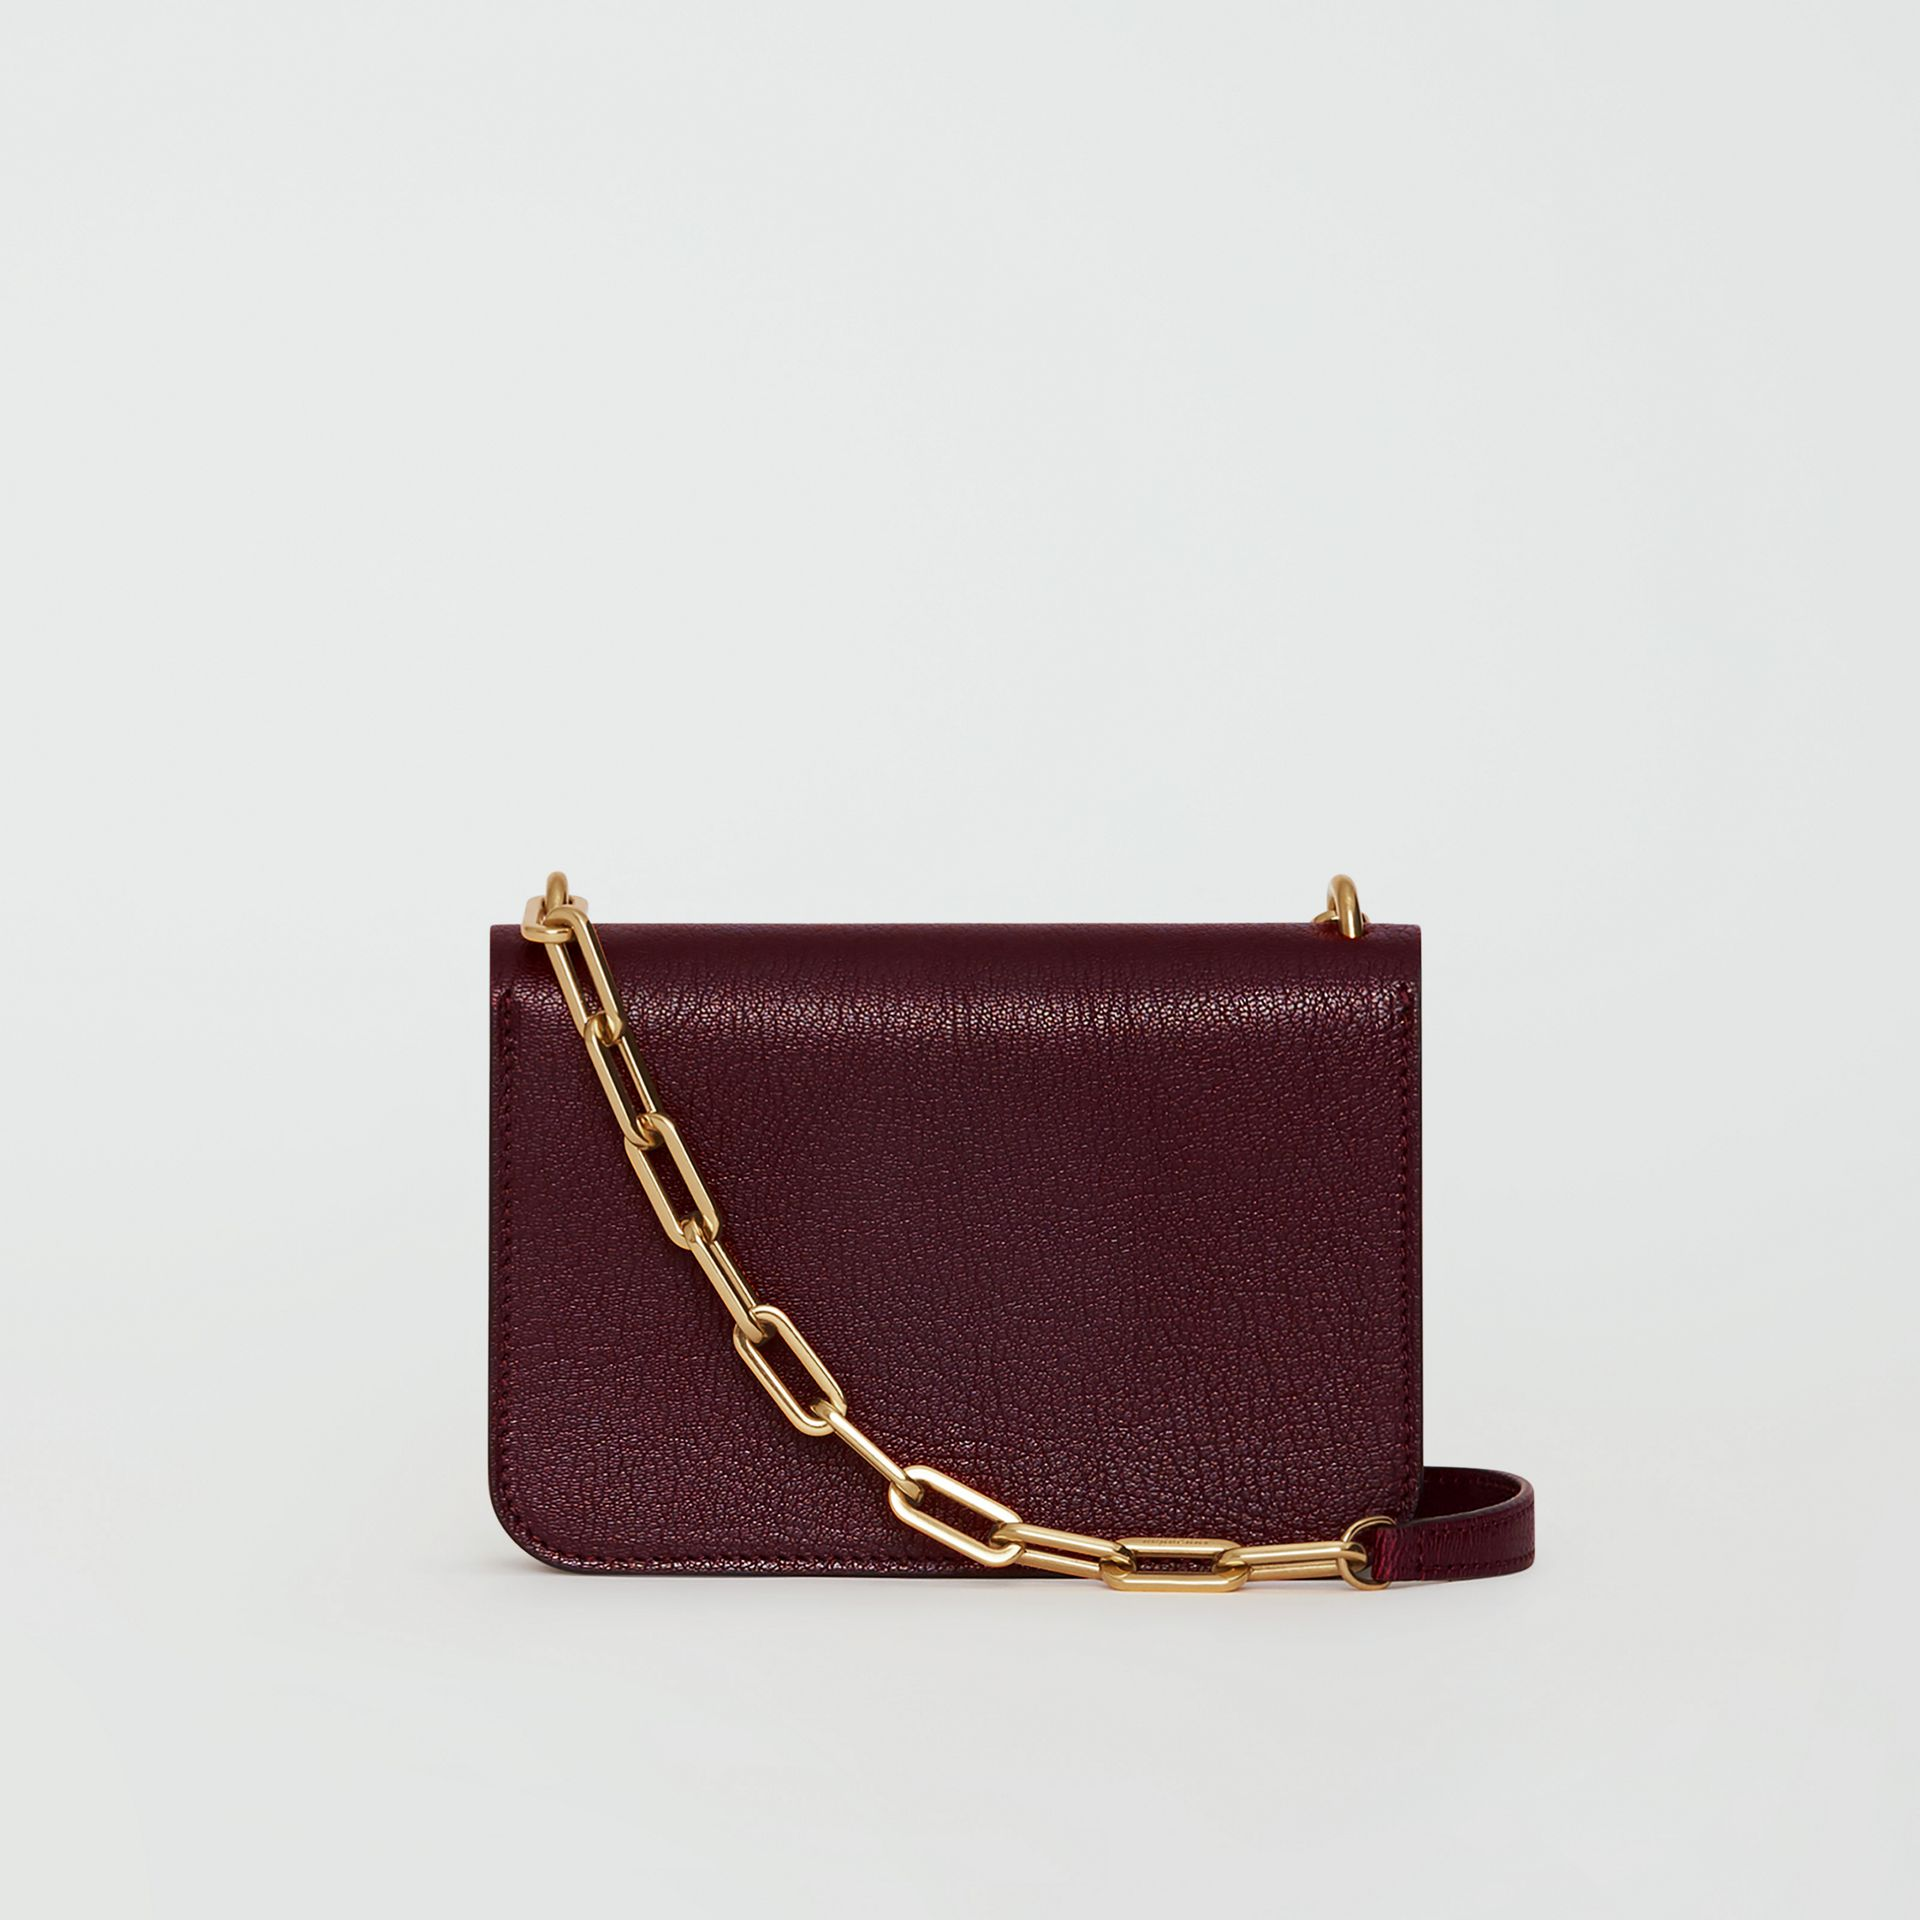 Borsa The D-ring mini in pelle con cristalli (Rosso Violetto Intenso) - Donna | Burberry - immagine della galleria 5